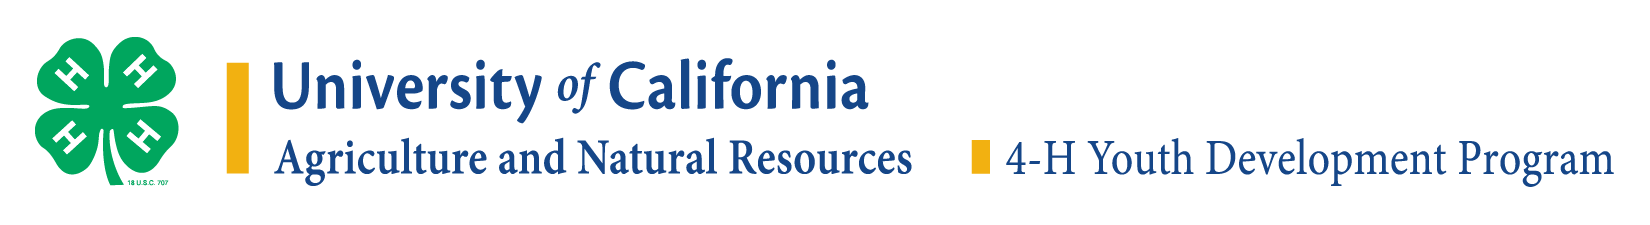 University of Calilifornia 4-H Logo in English